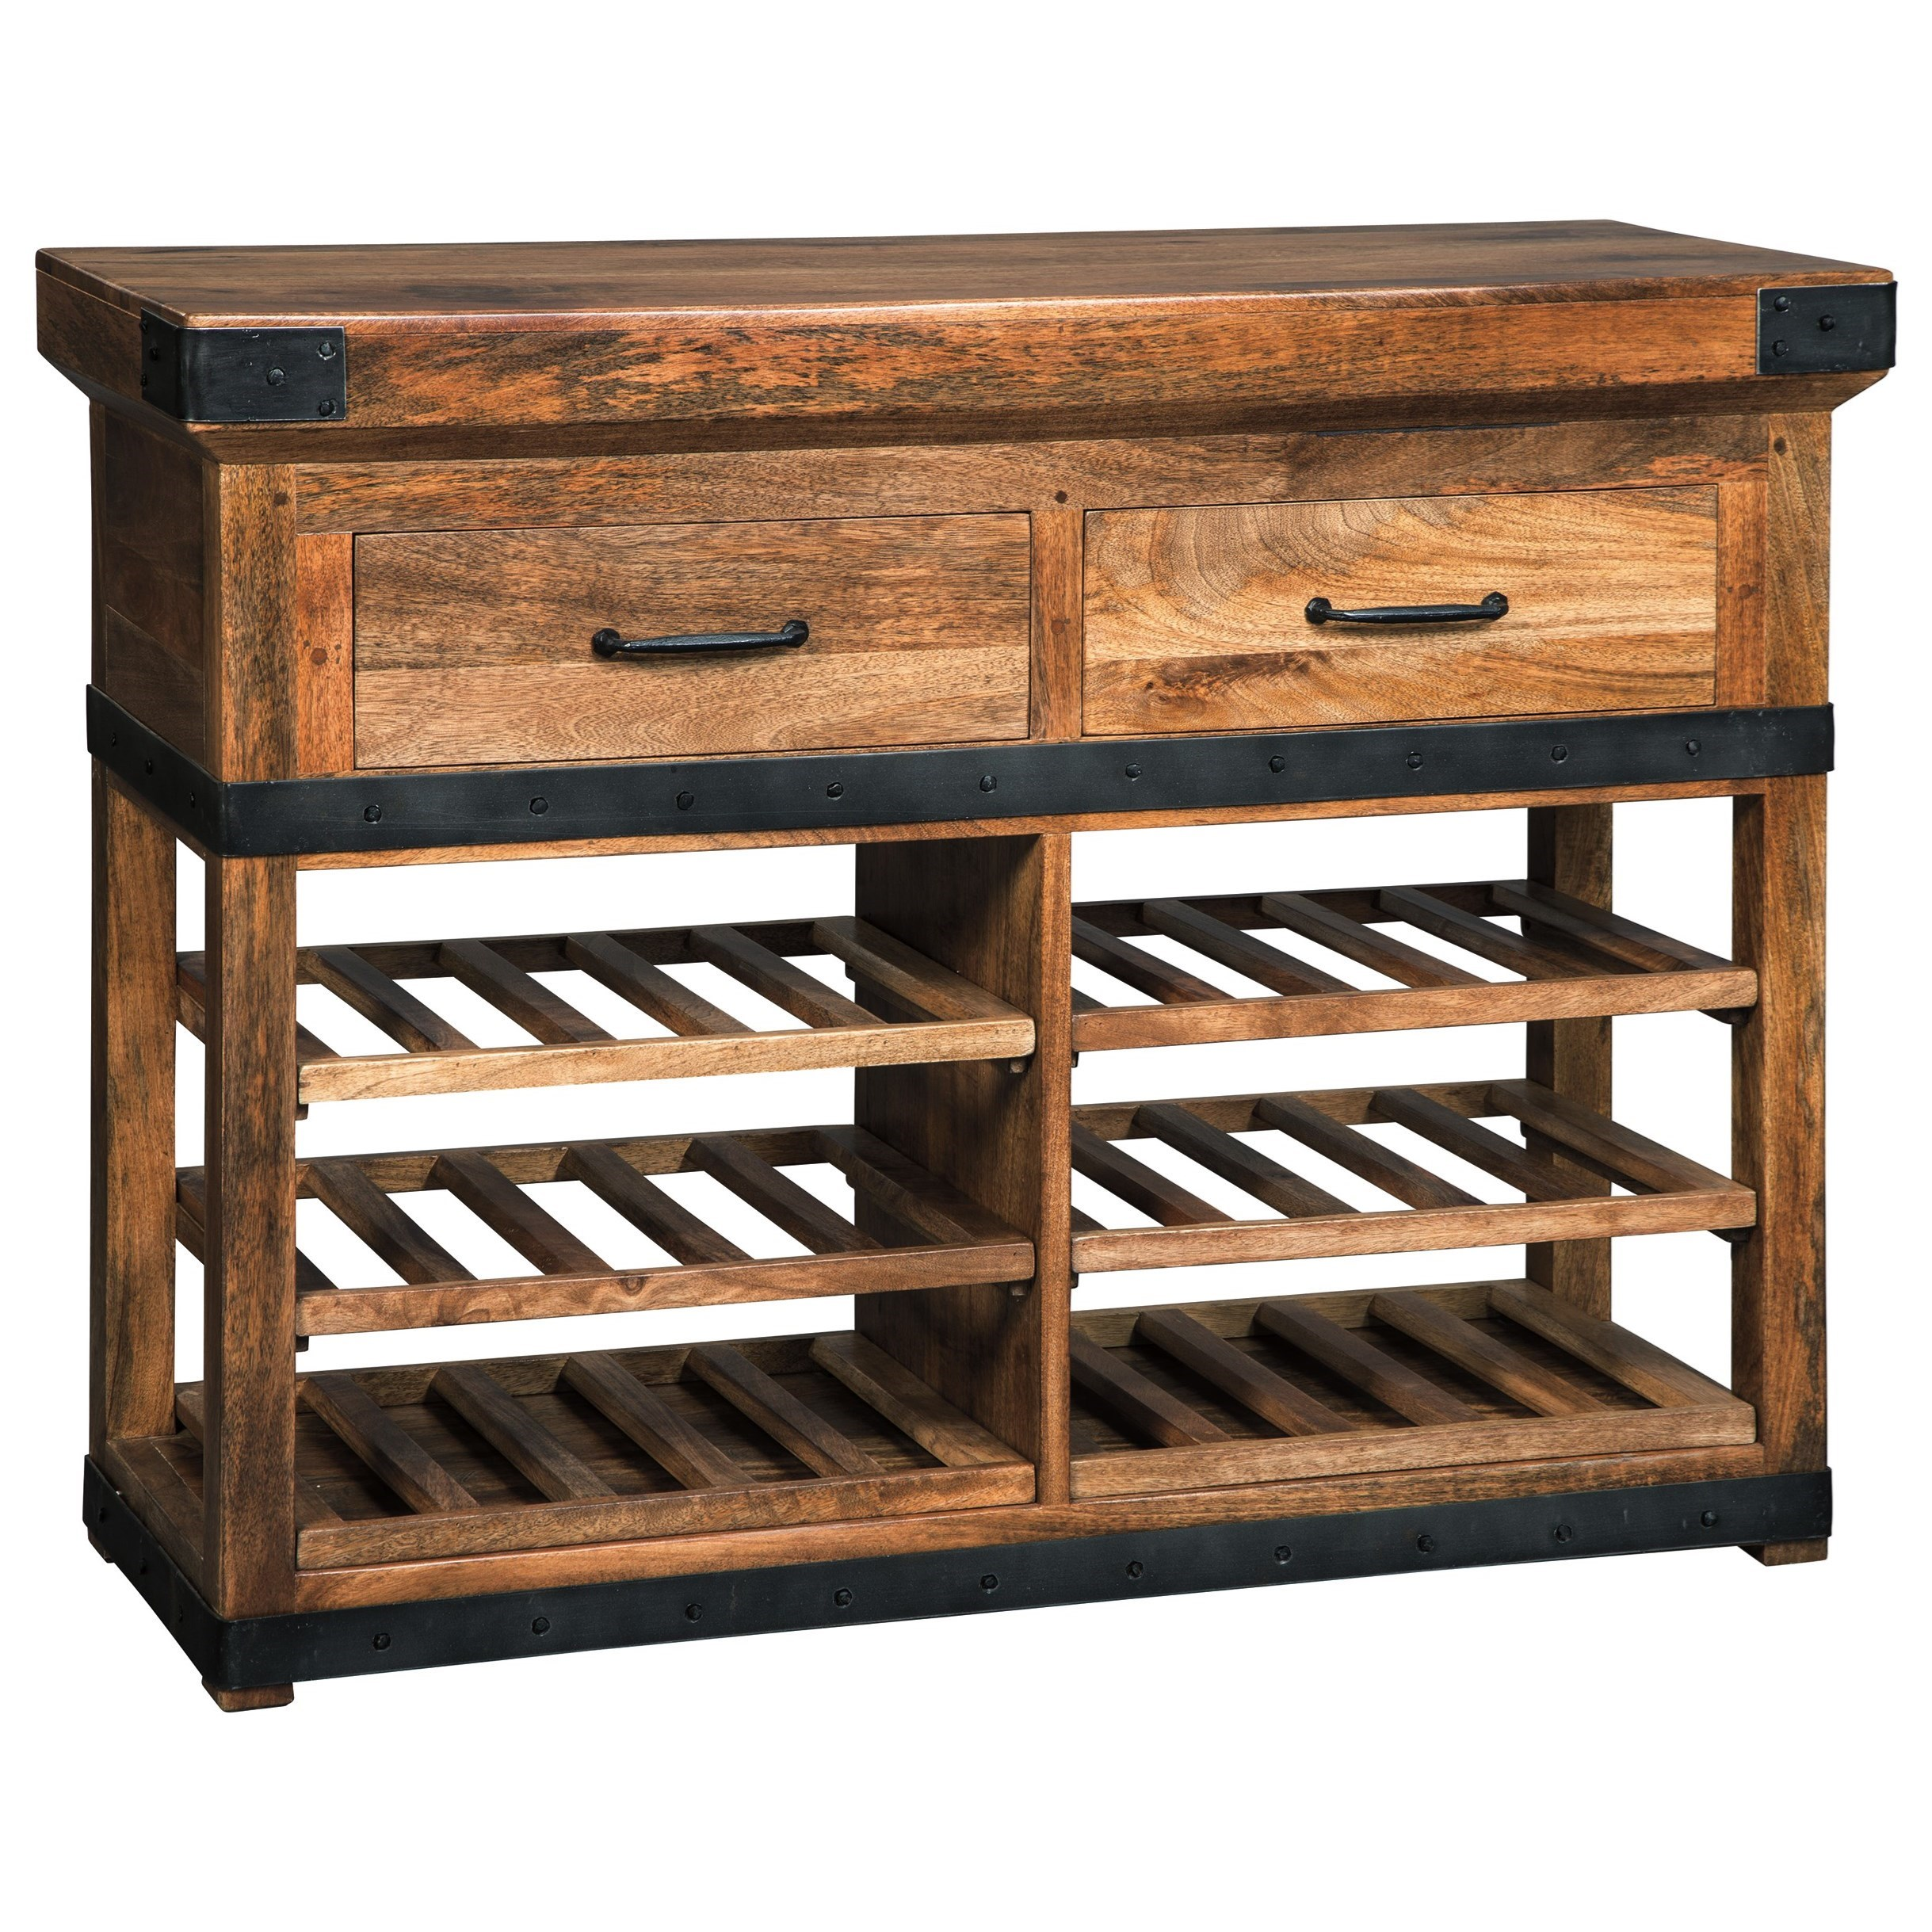 Genial Solid Wood Mango Wine Cabinet With Industrial Metal Accents